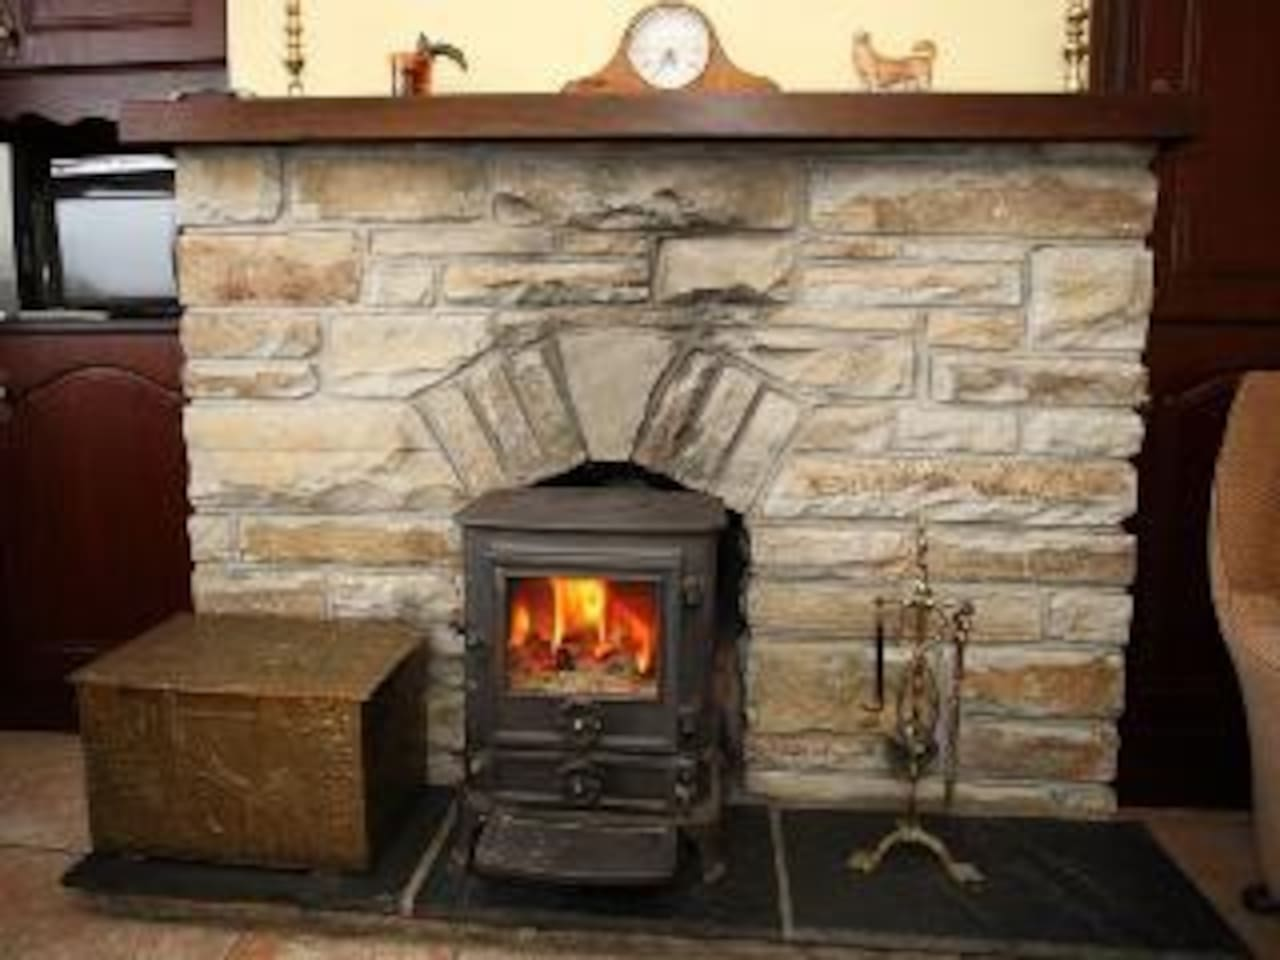 Open fireplace and stove